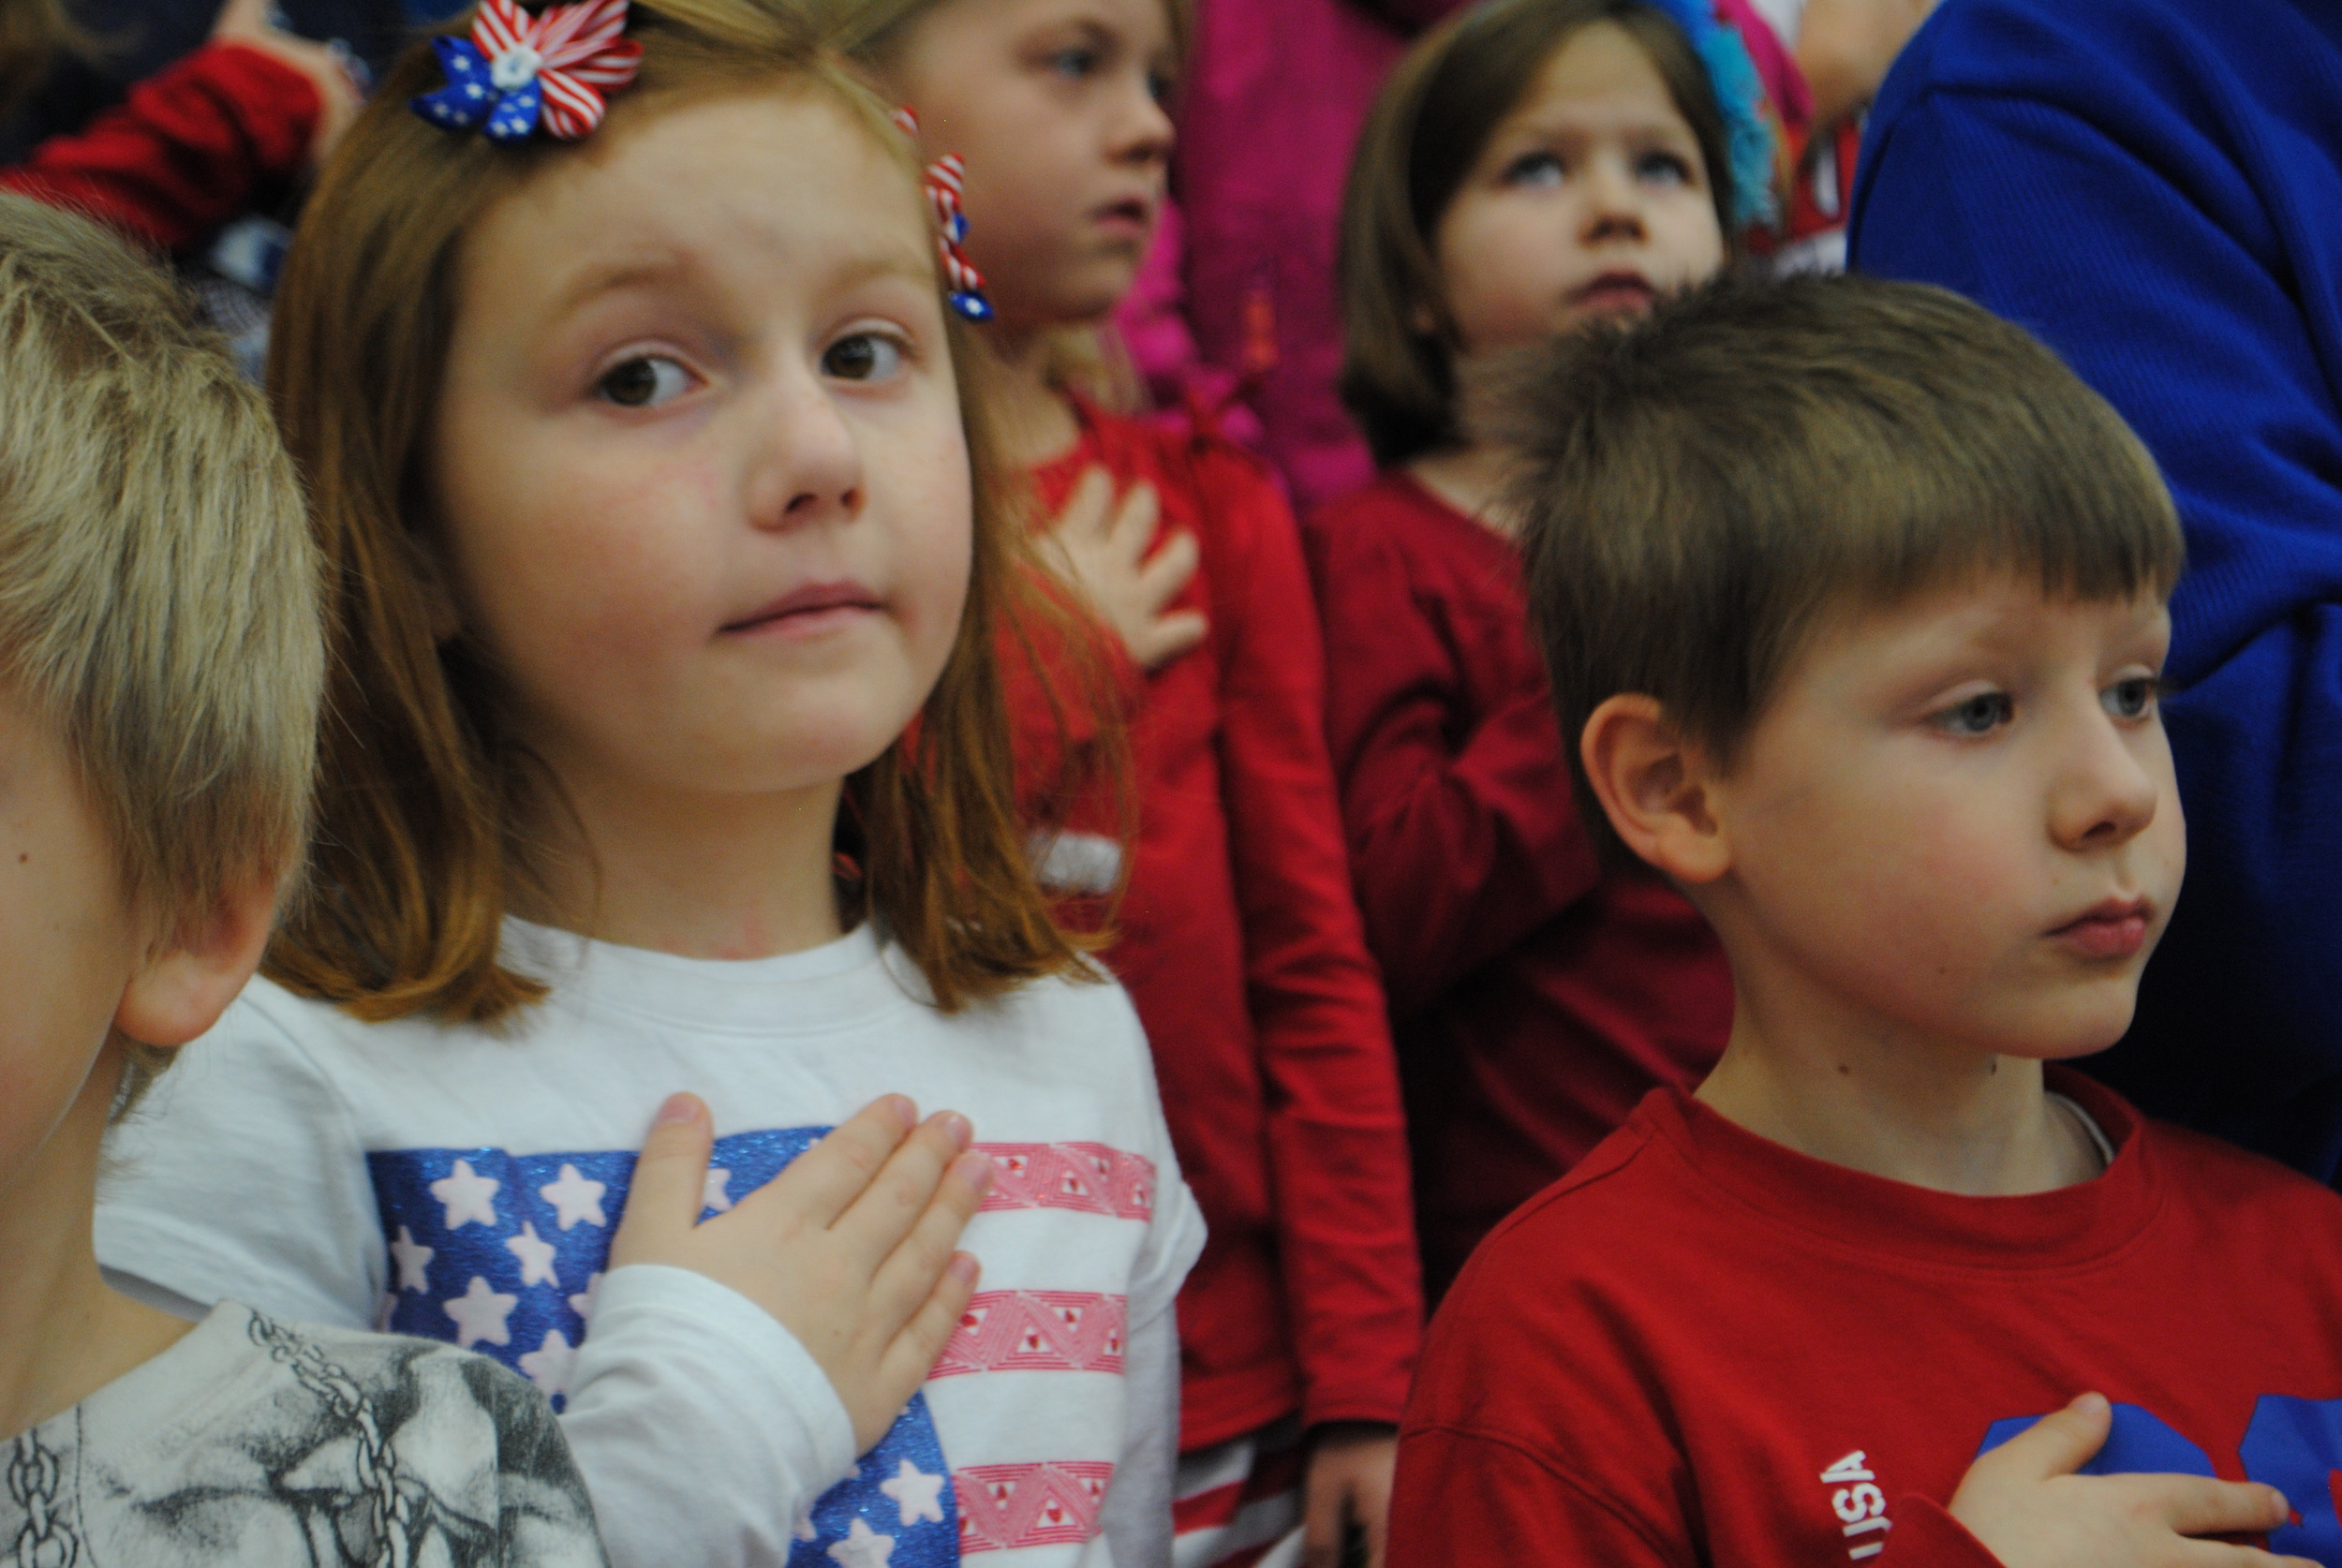 WDC Kindergarten students Emma Weniger and Johnathan Hockert put their hands over their hearts during the Pledge of Allegiance at WDC Veterans Day program held today at WDC Middle/High School Gym. WDC's Veterans Day program teaches WDC students the importance of patriotism and gratitude for veterans. (Photos by Dana Pavek, WDC Schools)